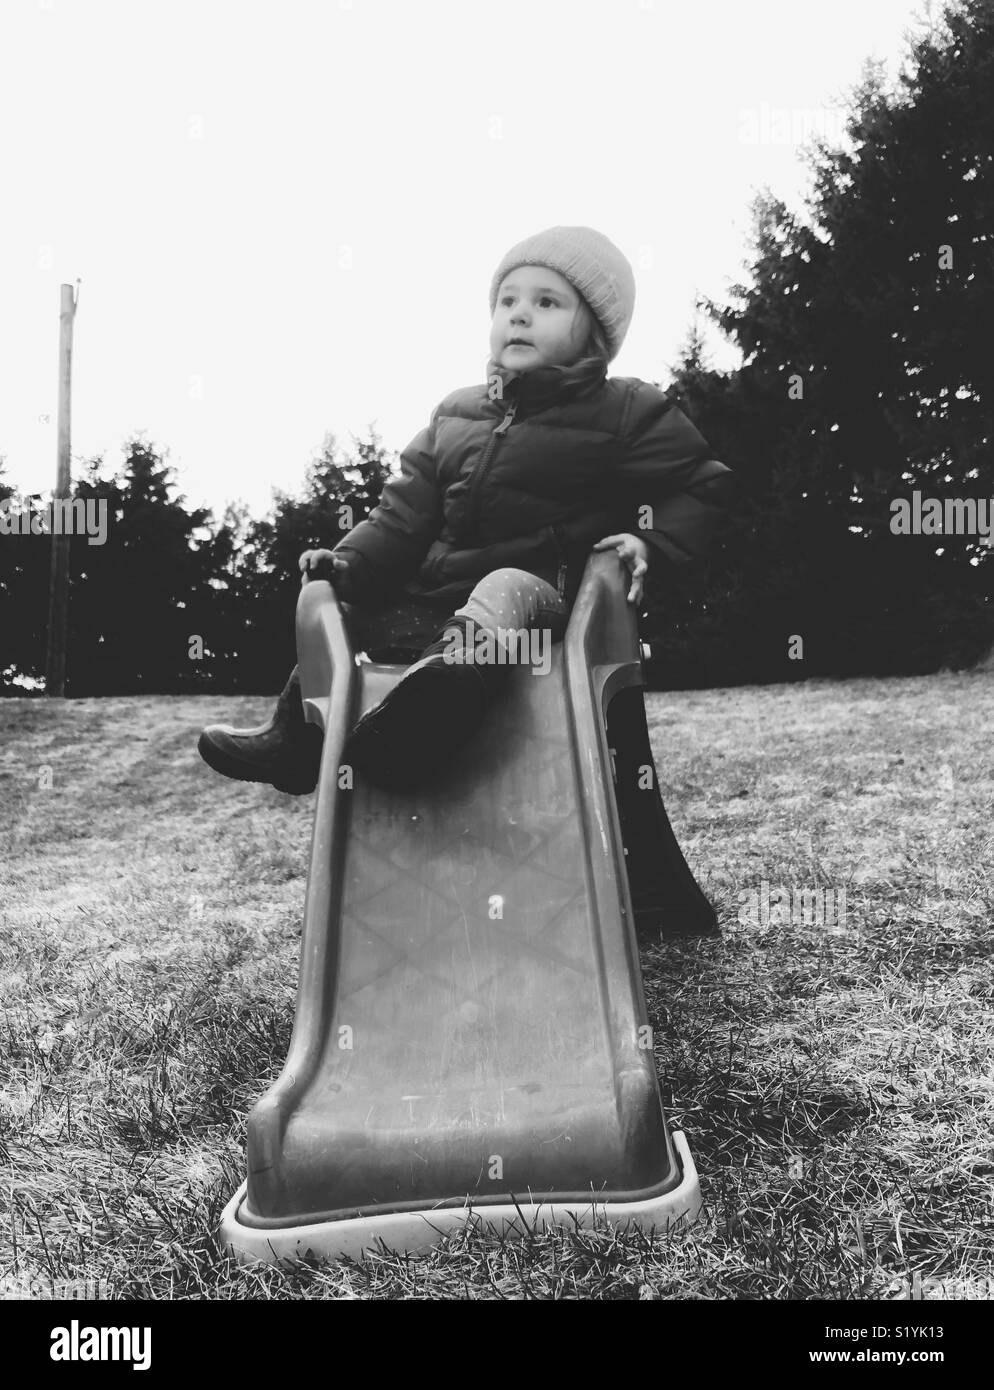 Black and white image of toddler girl sitting on plastic slide in backyard garden - Stock Image